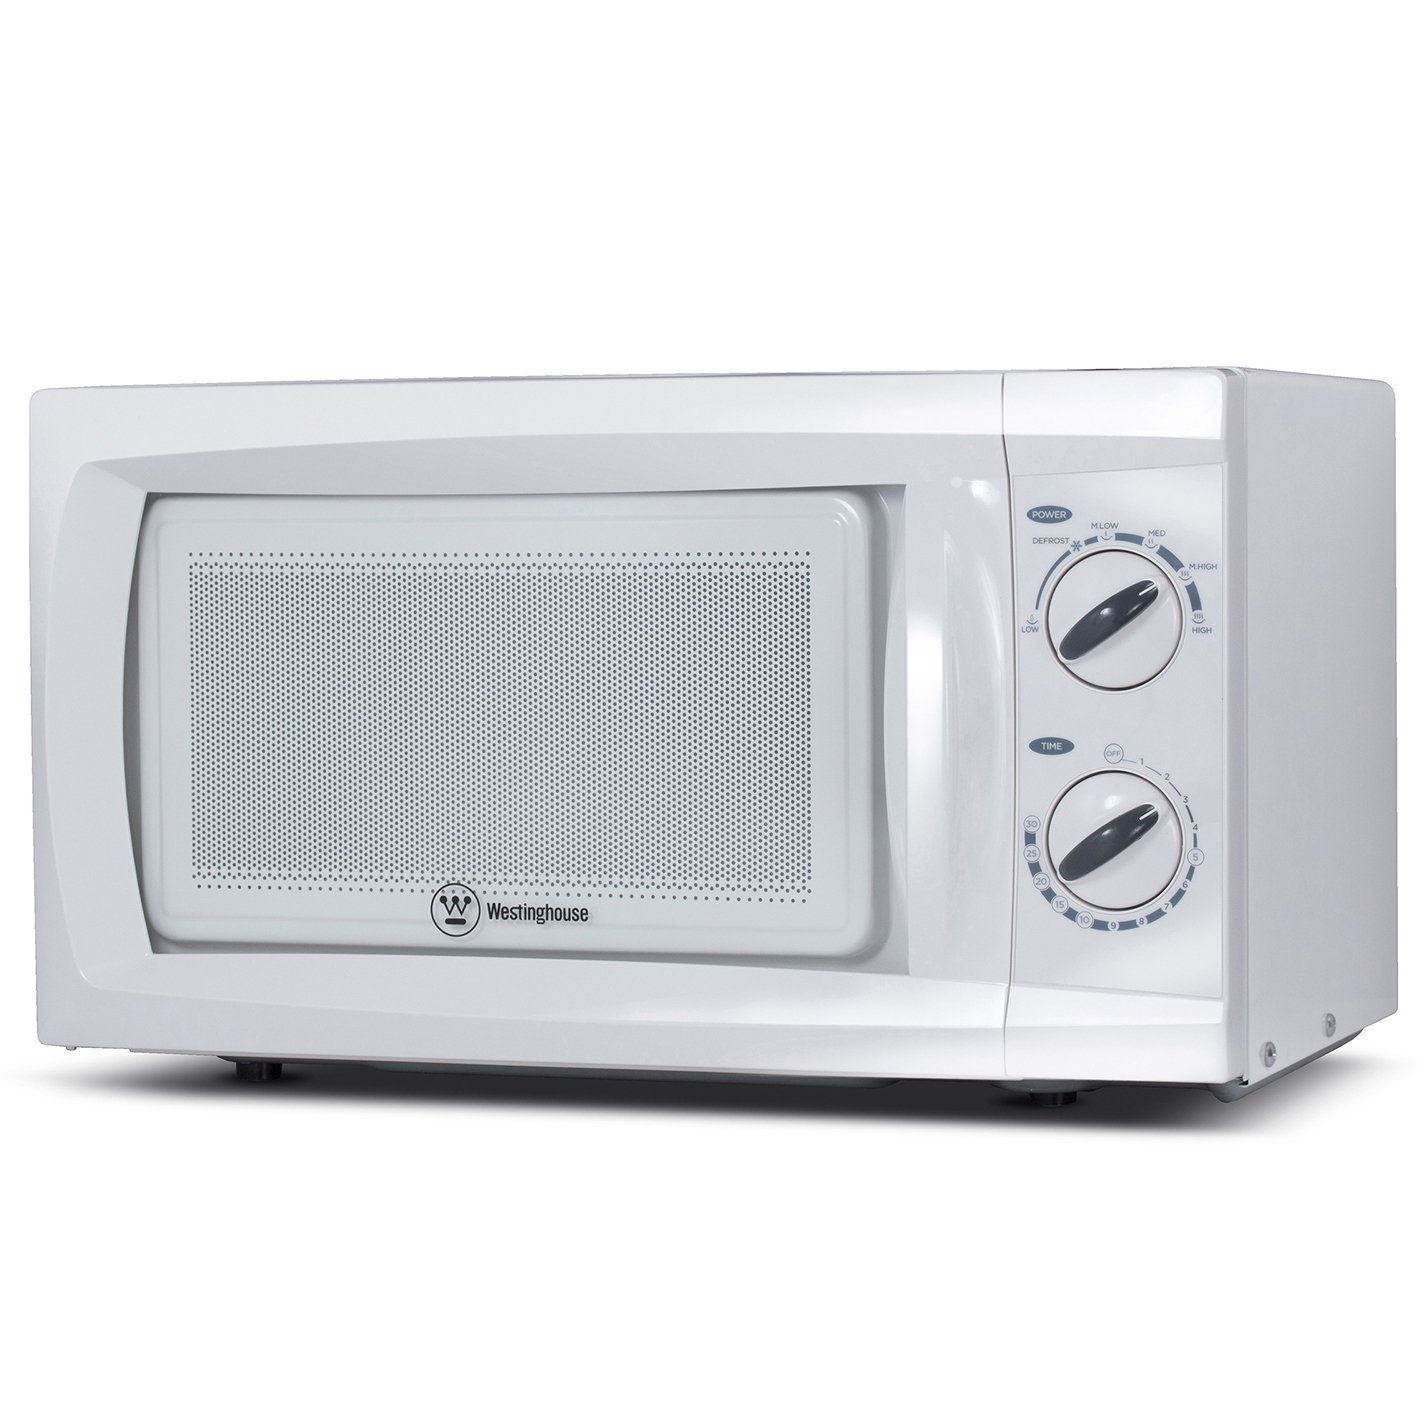 Westinghouse, WCM660W, Countertop Microwave Oven, 600 Watt, 0.6 Cubic Feet, White